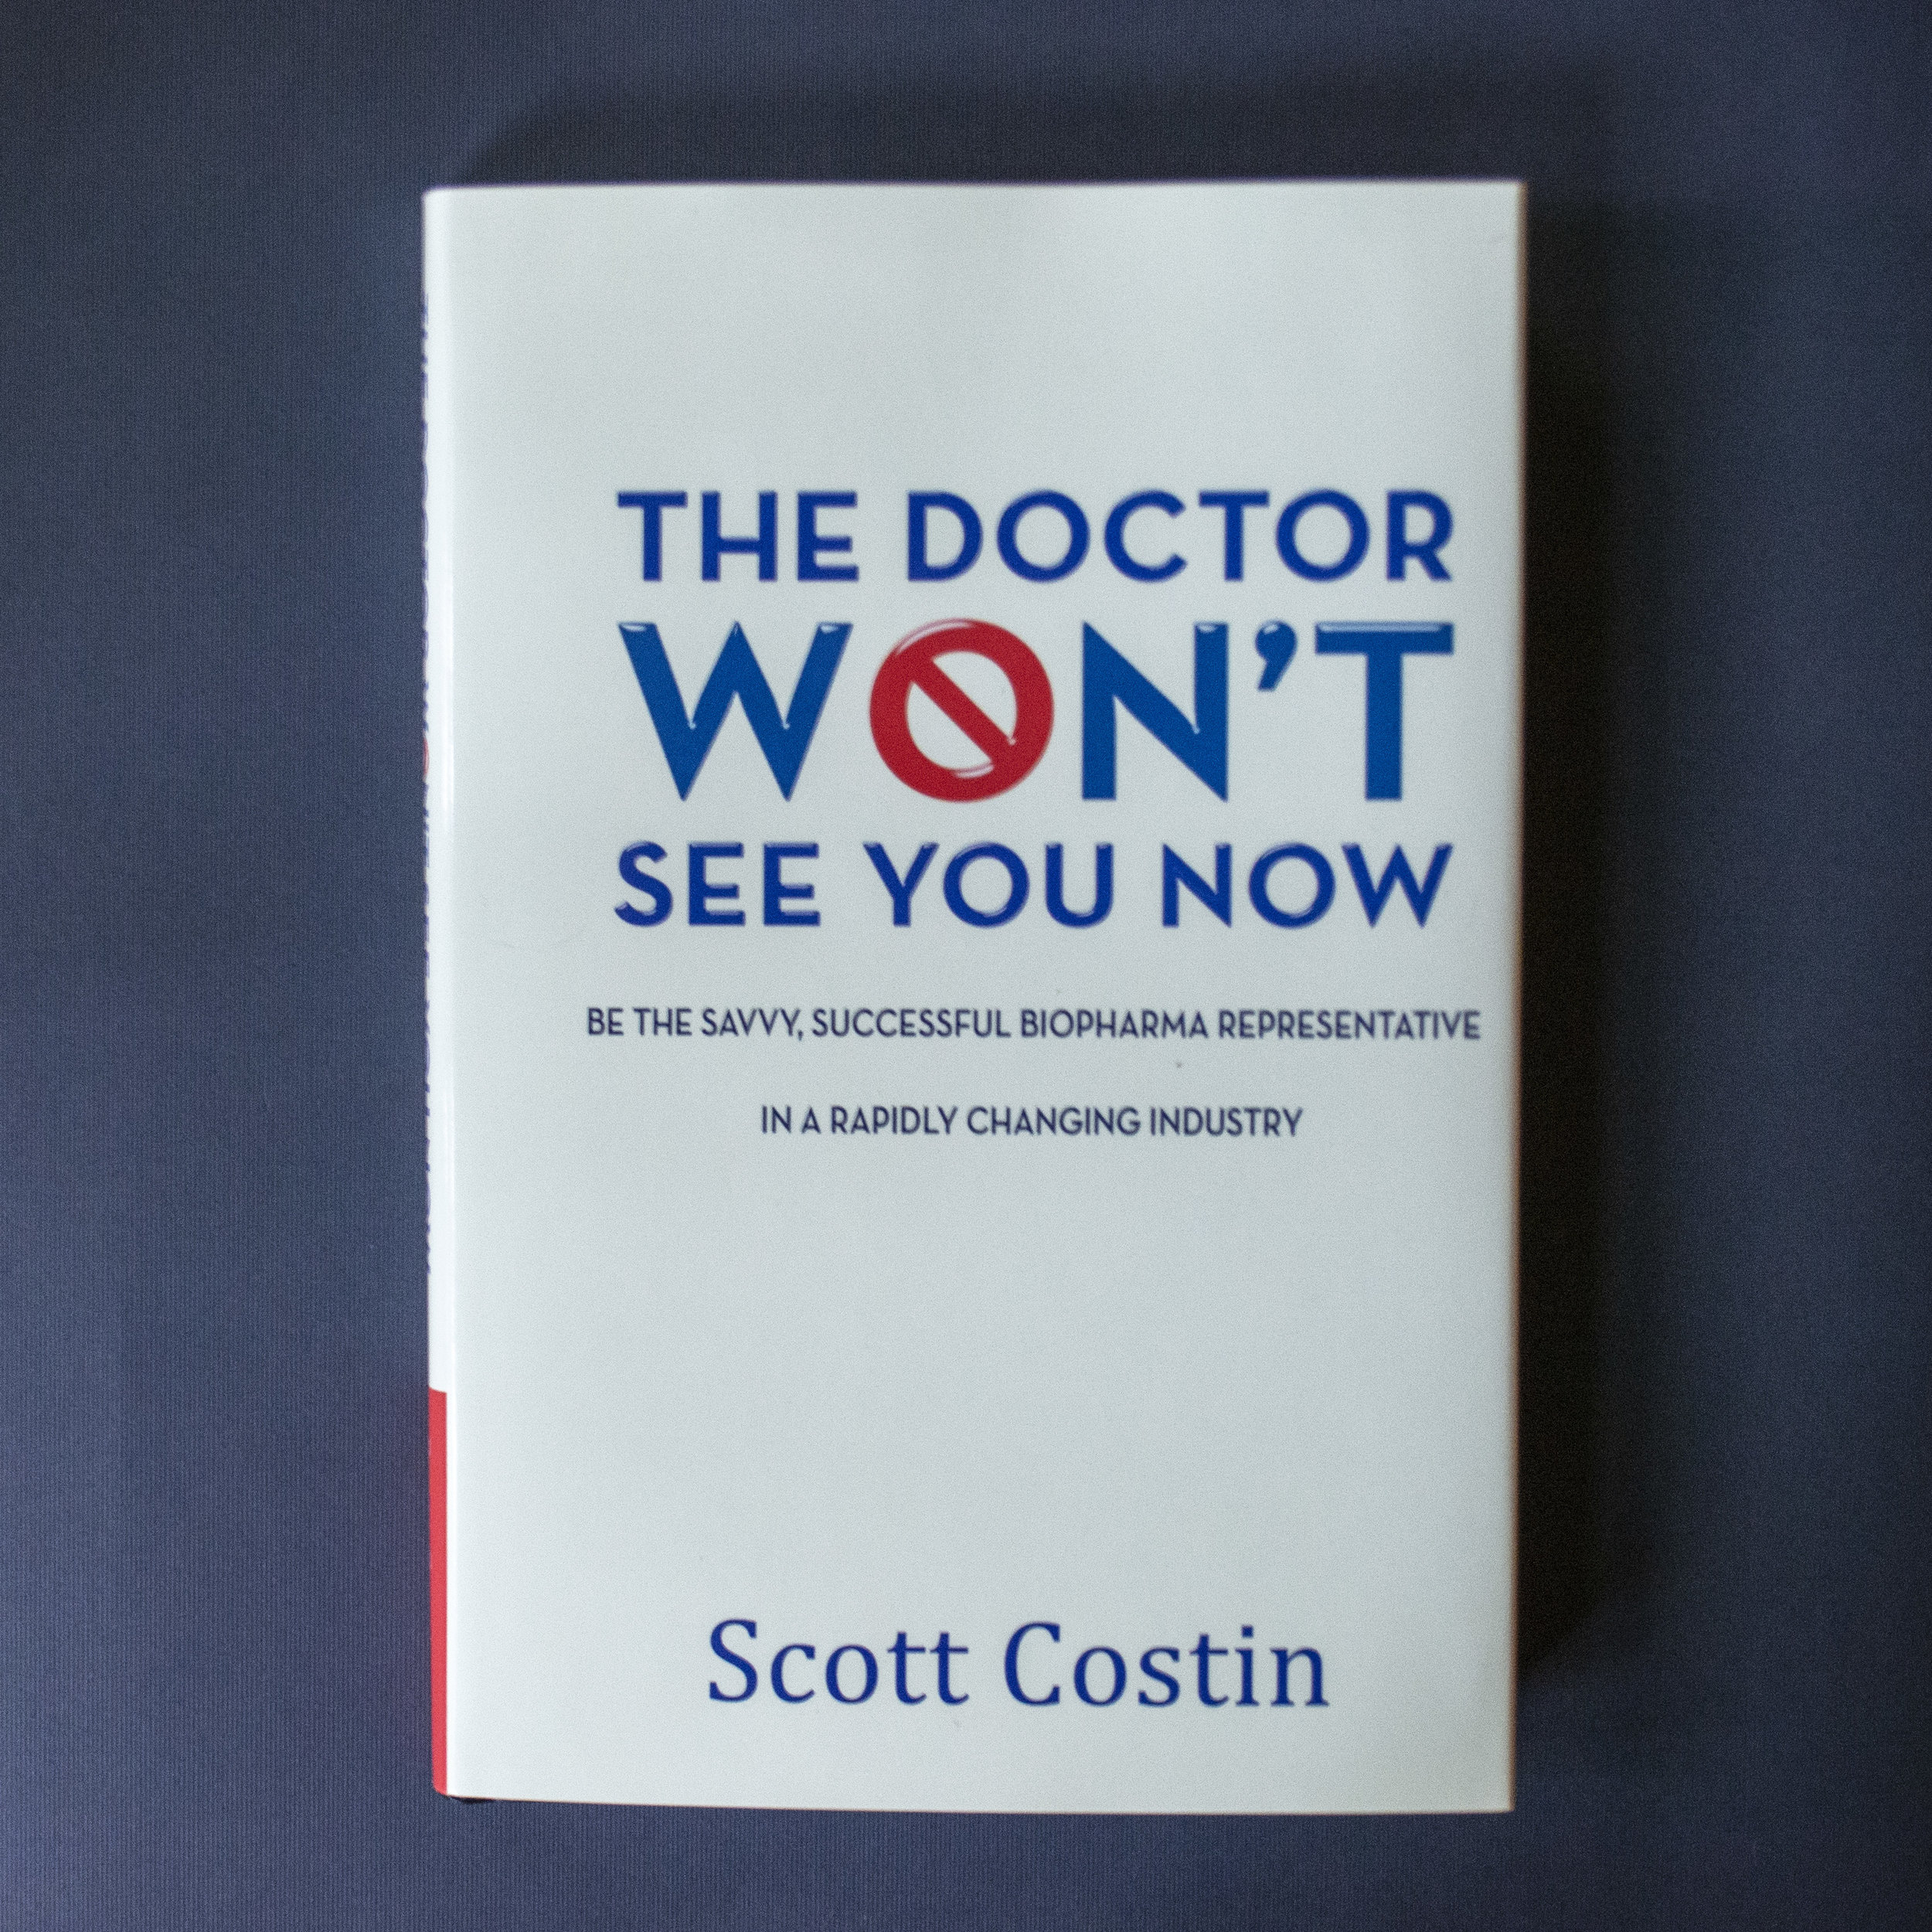 "The Doctor Won't See You Now - Scott Costin - A powerful tidal wave began to form almost 20 years ago when physicians and their employers began implementing policies to significantly reduce or eliminate communication between biopharma representatives and health care providers. At the same time, pharmaceutical and biologics employers were asking their field force to meet, connect with, and support health care providers whose patients might benefit from their therapies.It was the perfect storm.Since the genesis of this wave, impediments and limitations to access by health care delivery entities have increased unabated. Consequently, it appears the doors to health care customers are, for all intensive purposes, closed to biopharmaceutical representatives.Or are they?"". . .an unvarnished look at the challenges, roadblocks, risks, and rewards of a career in biopharma and, most importantly, the coaching and examples needed to be successful."" ~Kevin Madden, US Sales Manager, InHealth TechnologiesLearn more on Scott's website: www.thedoctorwontseeyounow.com"